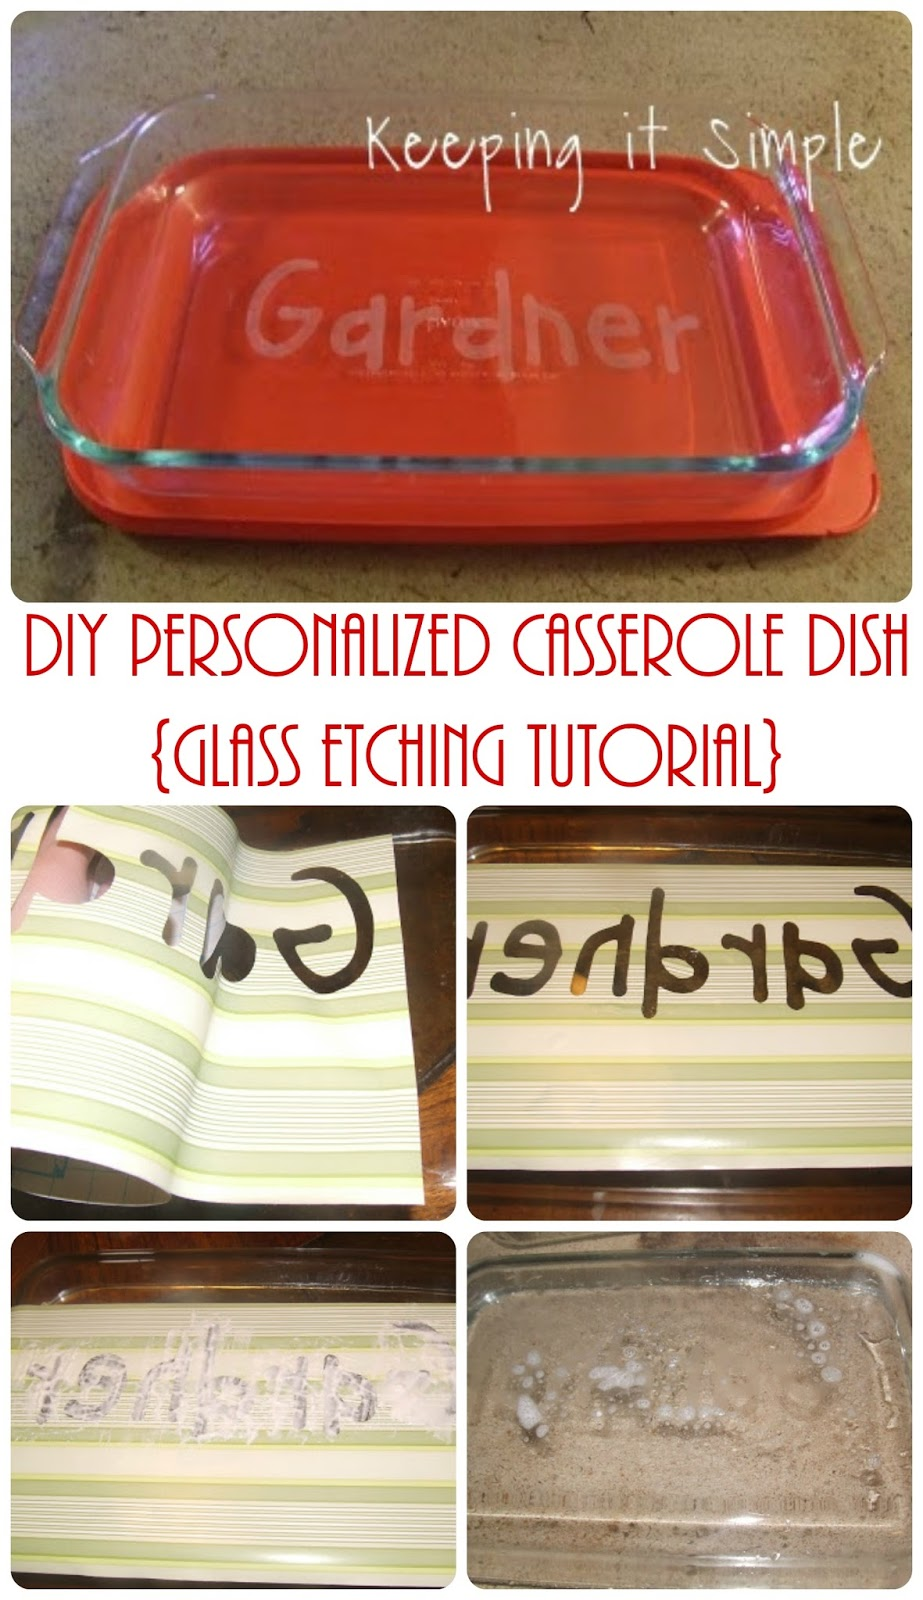 Diy Personalized Wedding Gift Ideas : Keeping it Simple: Easy Wedding Gift Idea- Personalize Casserole Dish ...